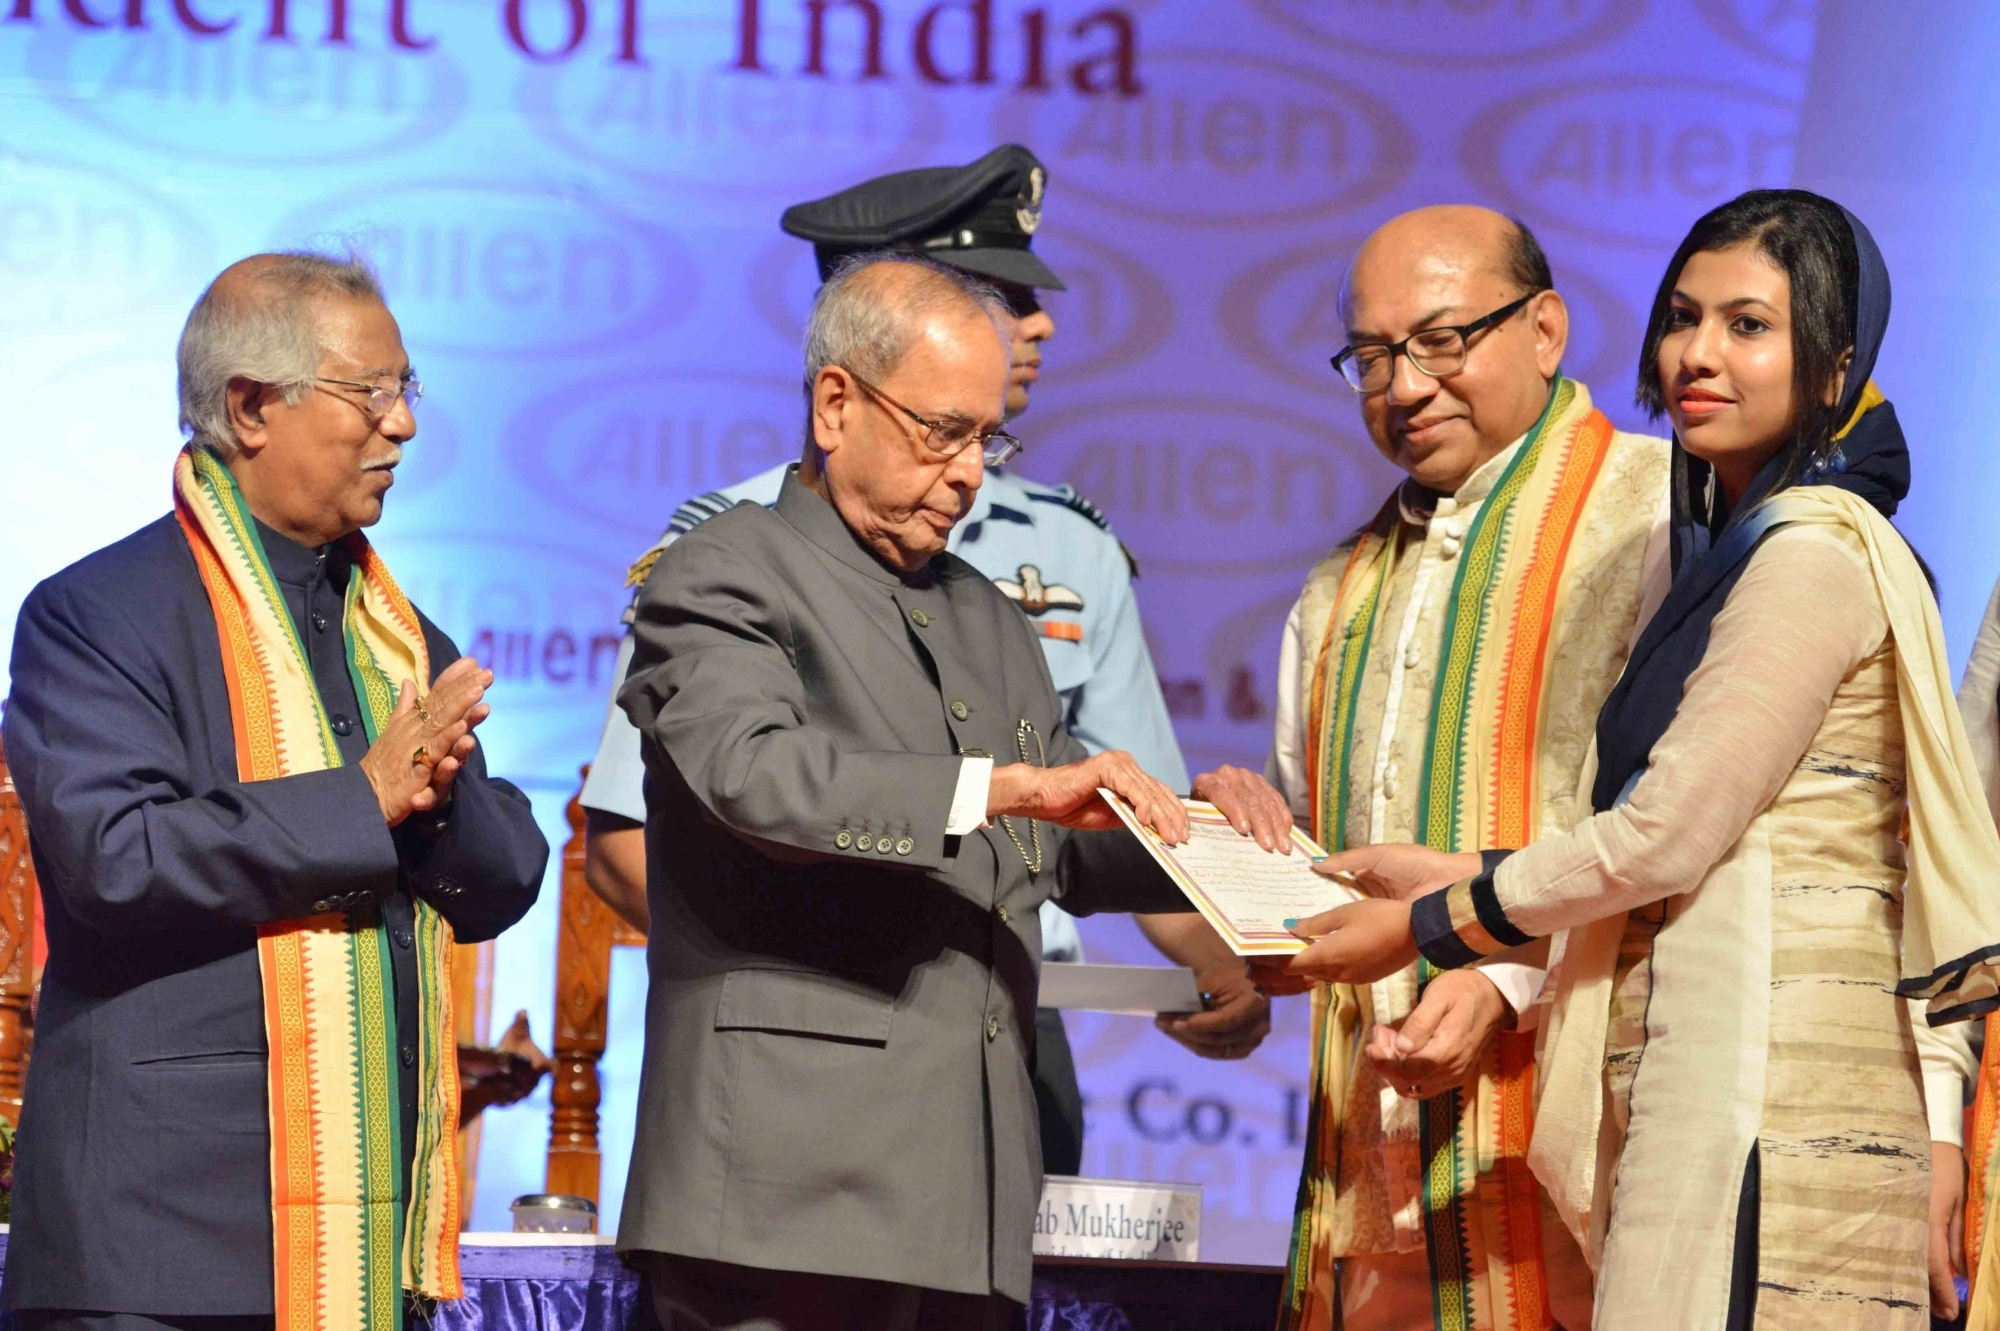 Homoeopathy, alternative medicine systems important: President